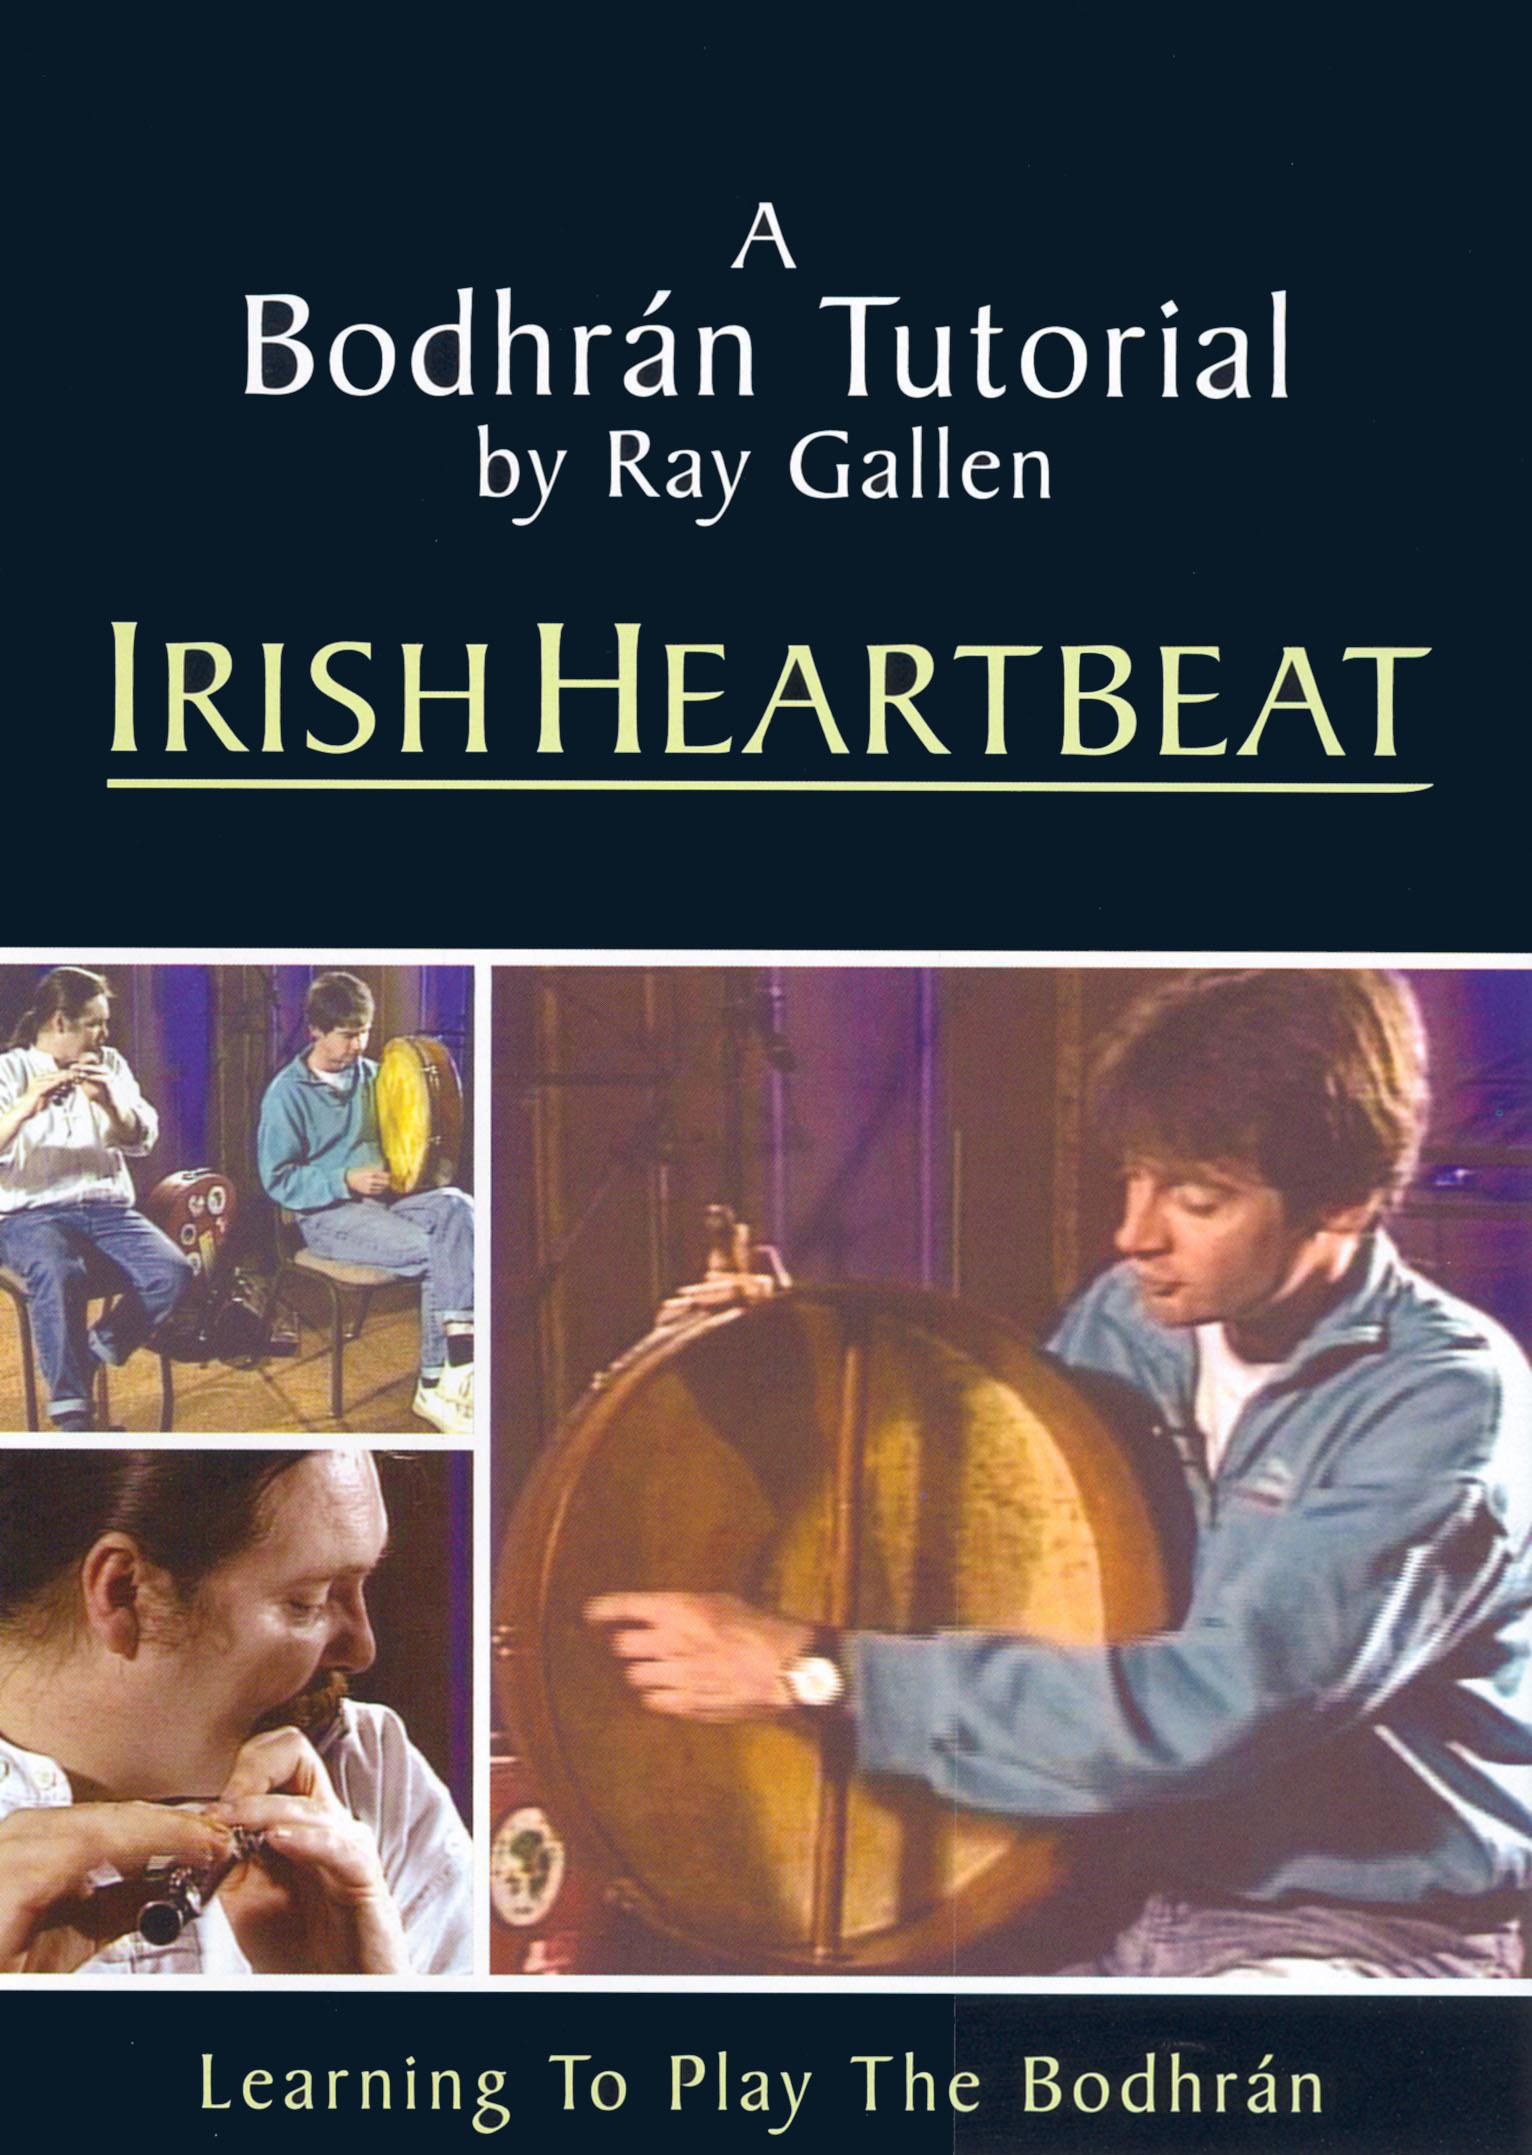 Ray Gallen: Bodhran Tutorial - Irish Heartbeat